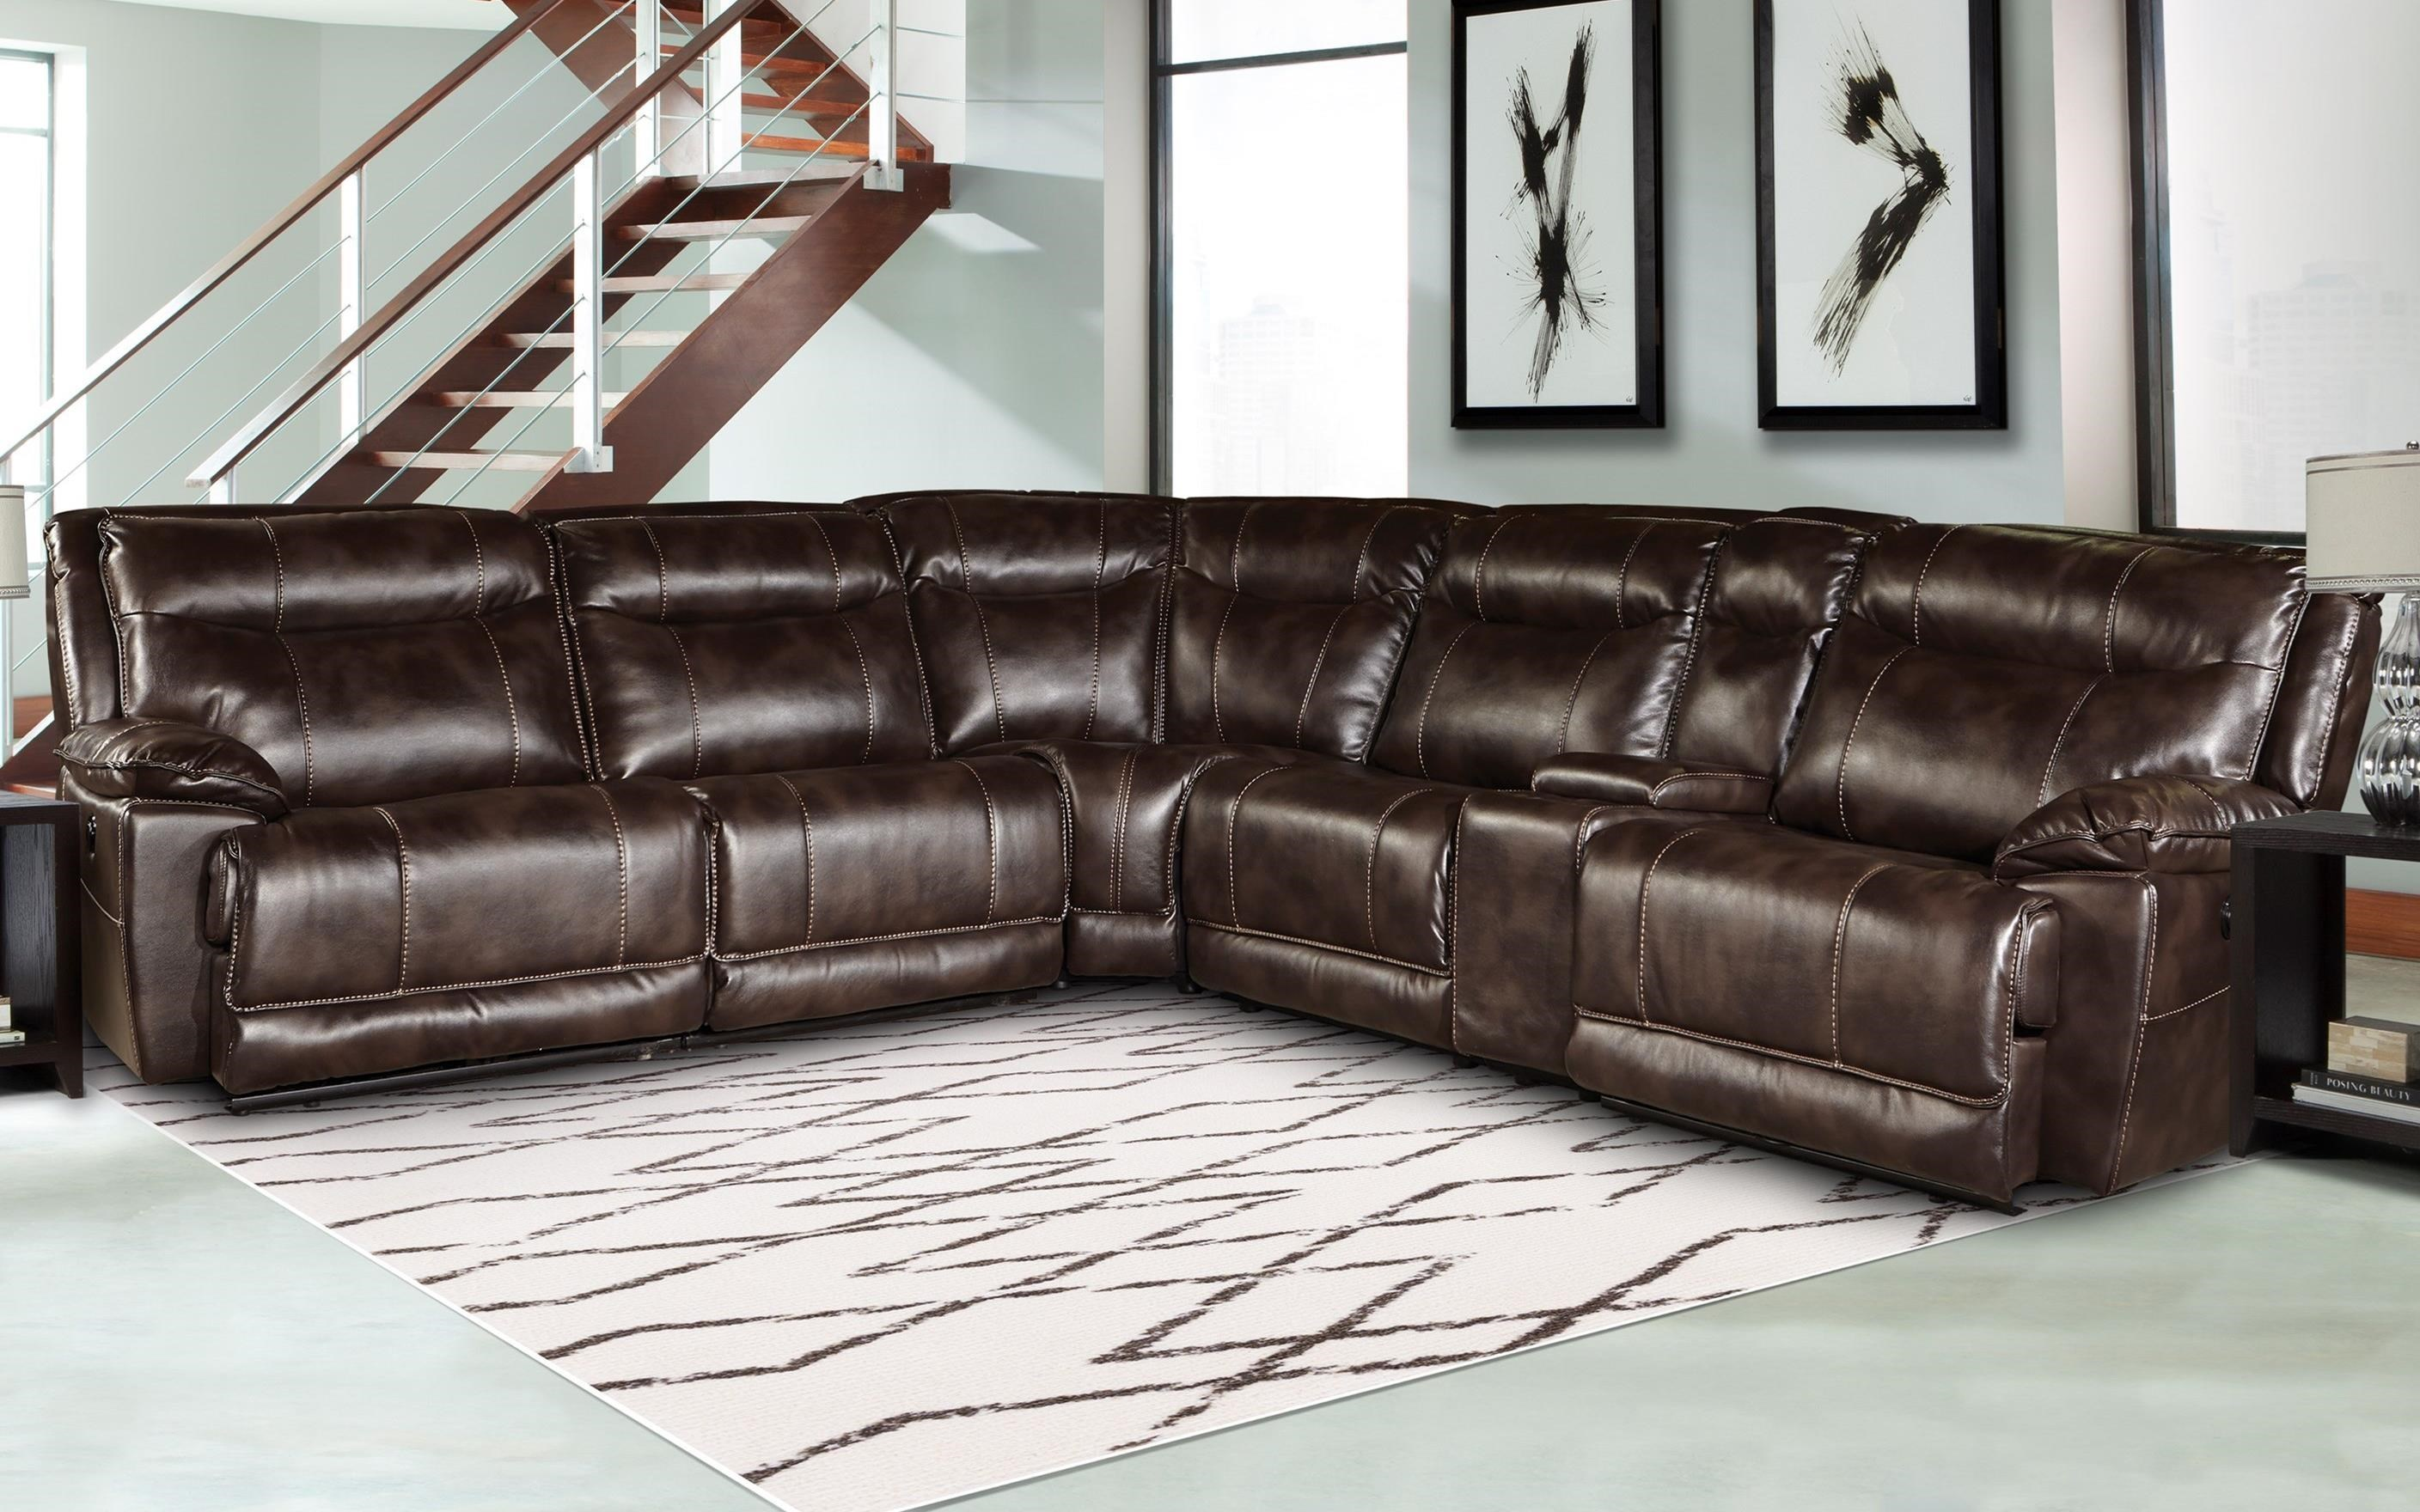 Great Parker Living Phoenix Casual Reclining Sectional Sofa With Power And  Storage Console